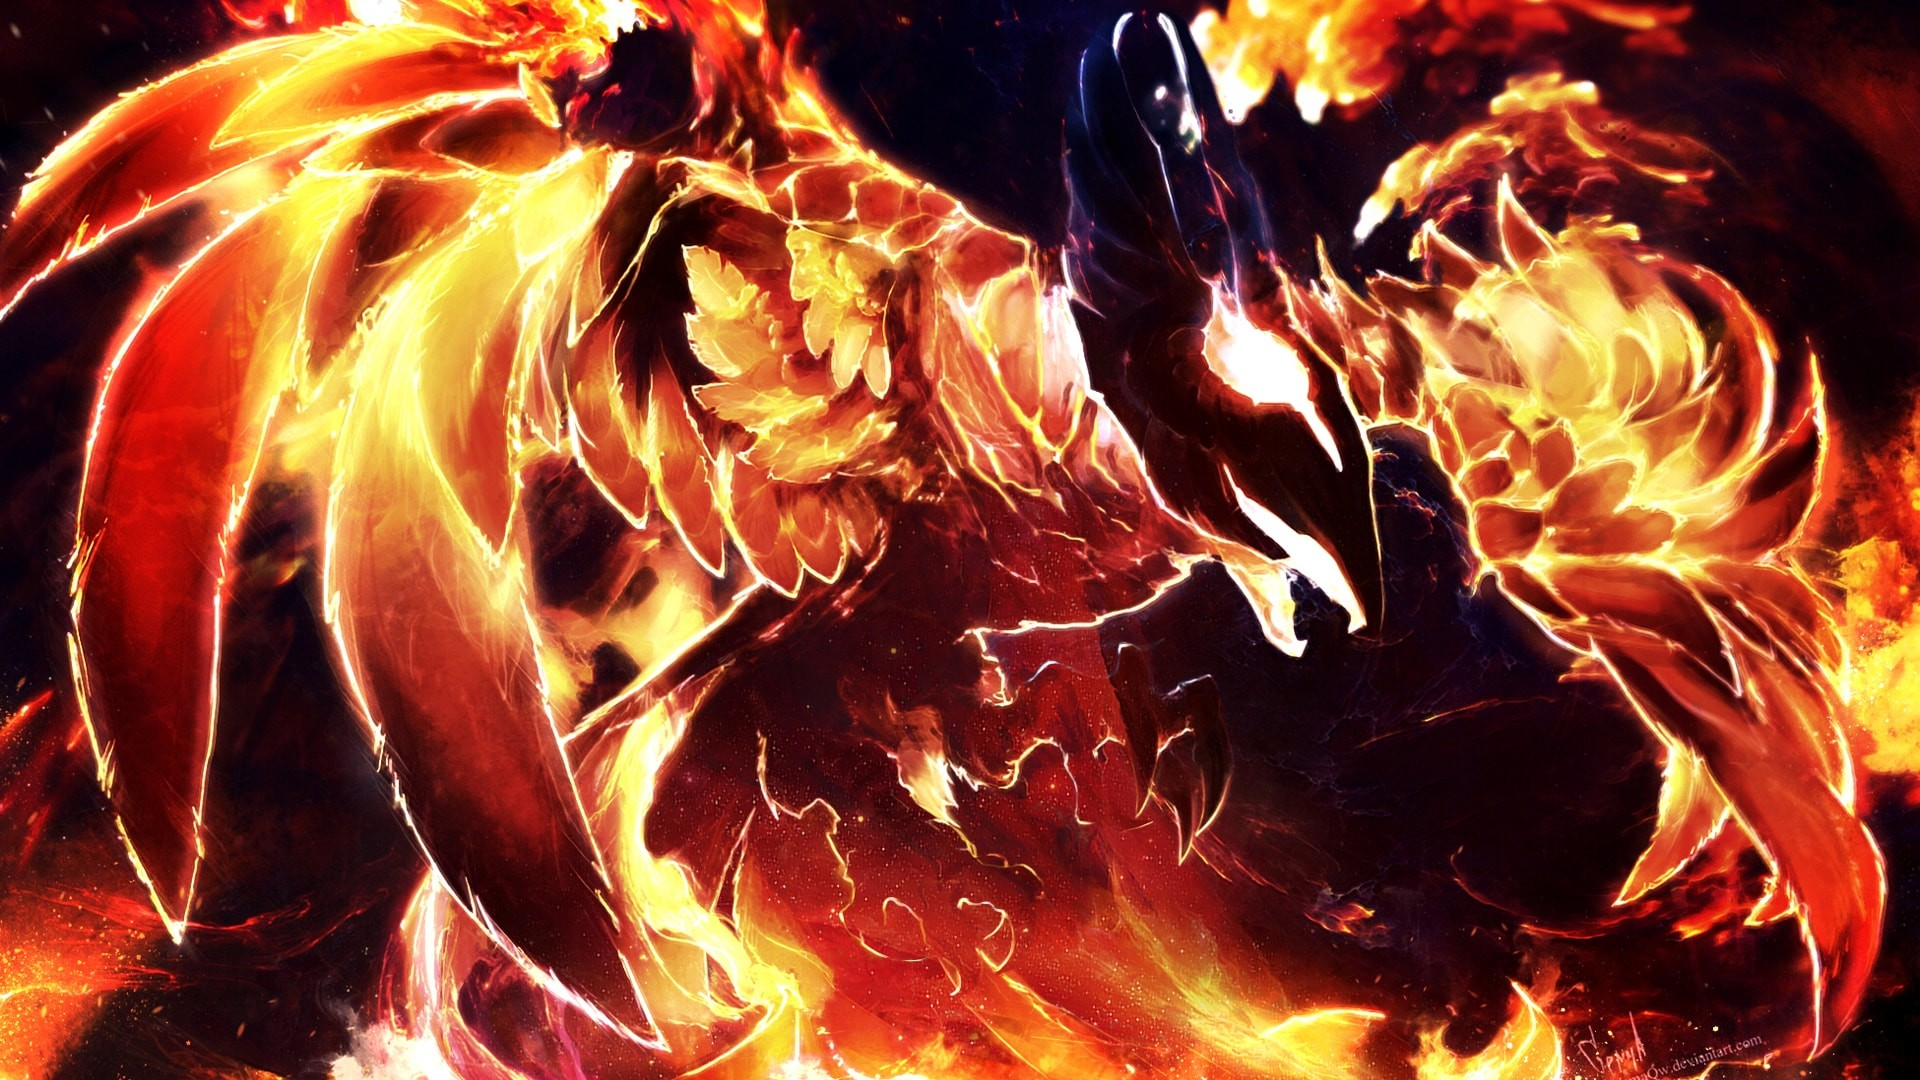 1920x1080 Dota2 : Phoenix Wallpapers Dota2 : Phoenix Desktop wallpapers